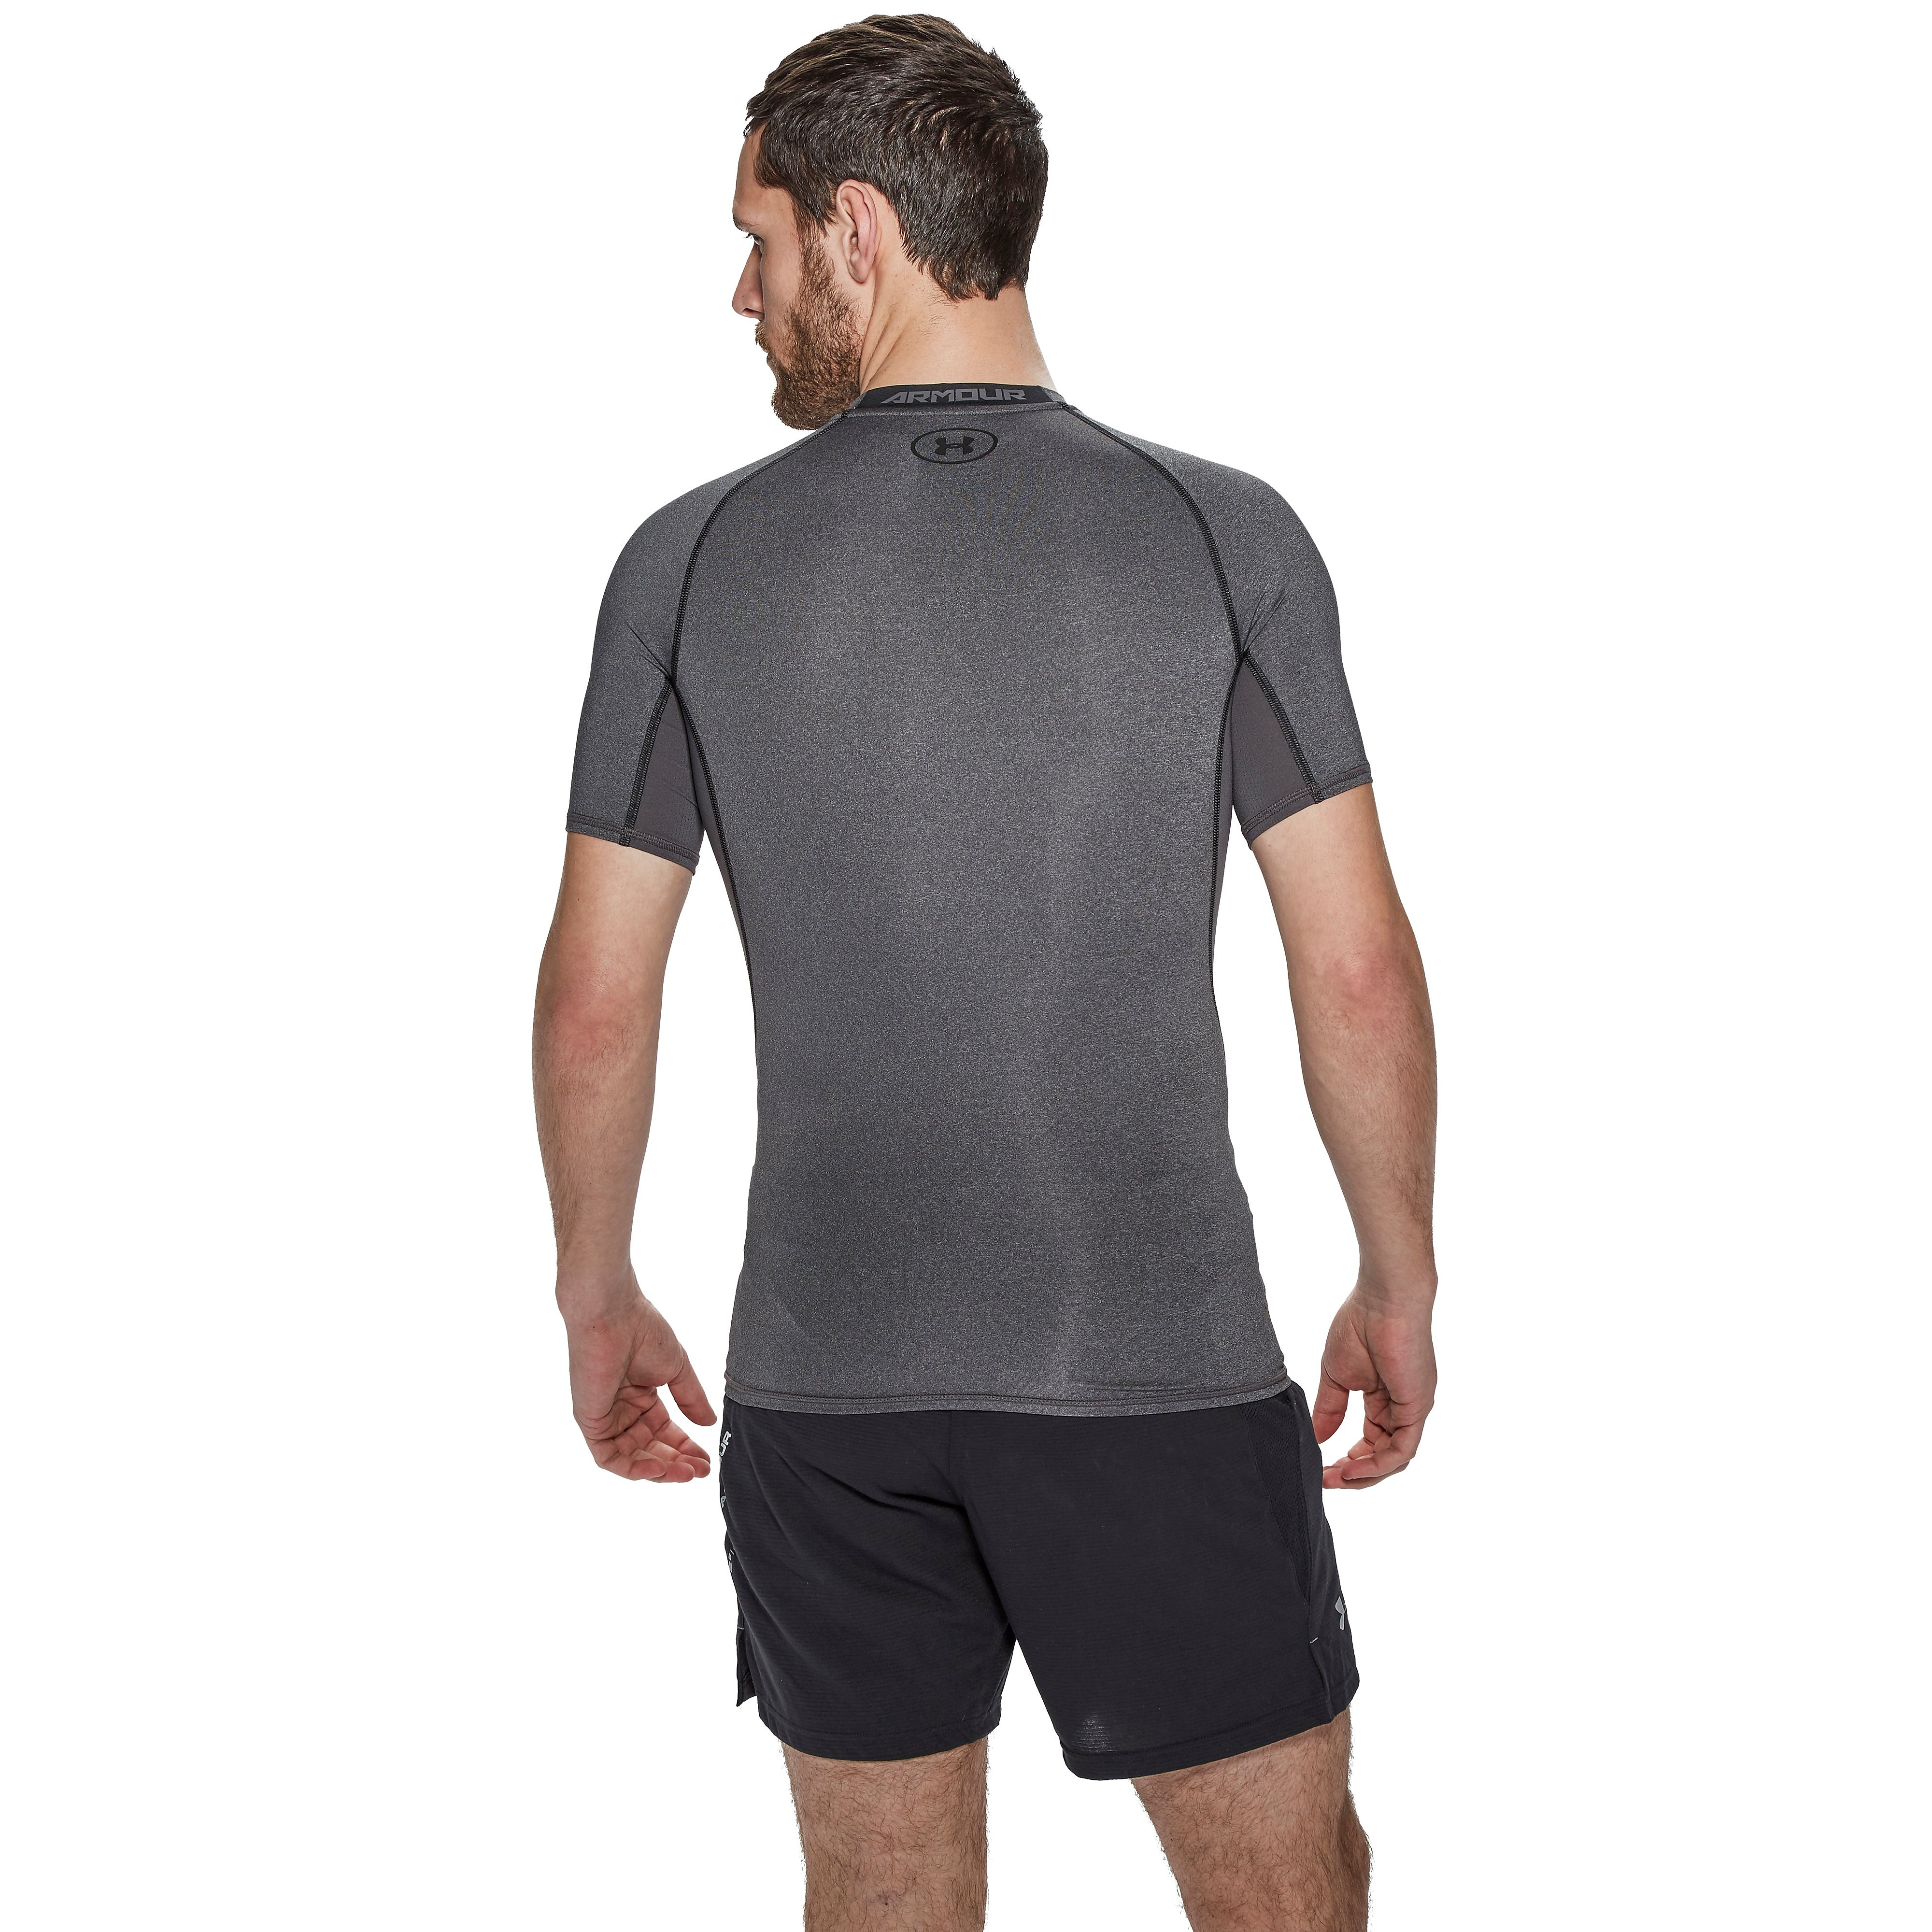 Under Armour HeatGear Armour Short Sleeve Compression Men's Shirt